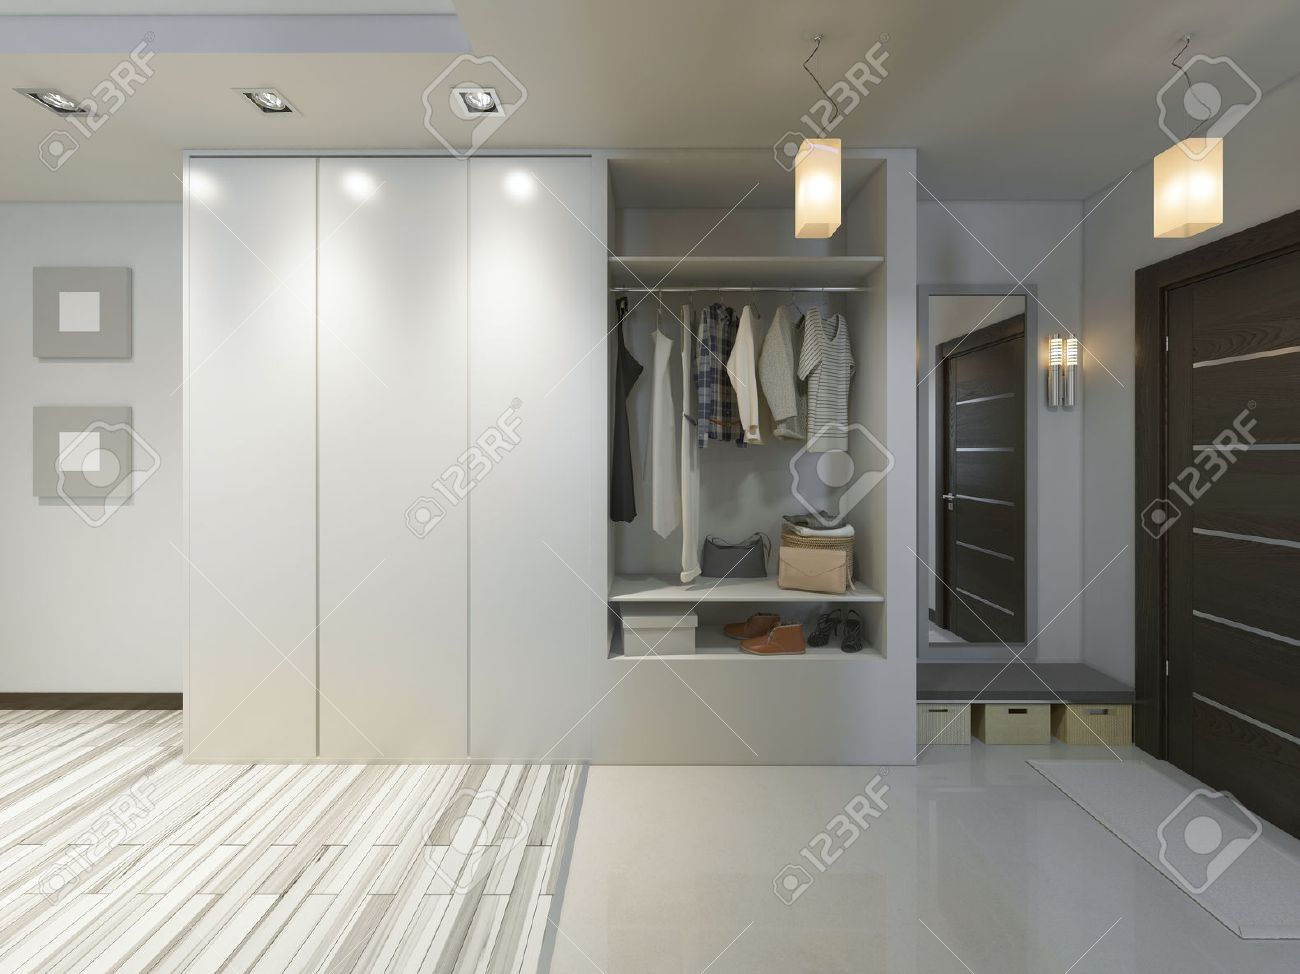 Schiebeschrank Stock Photo